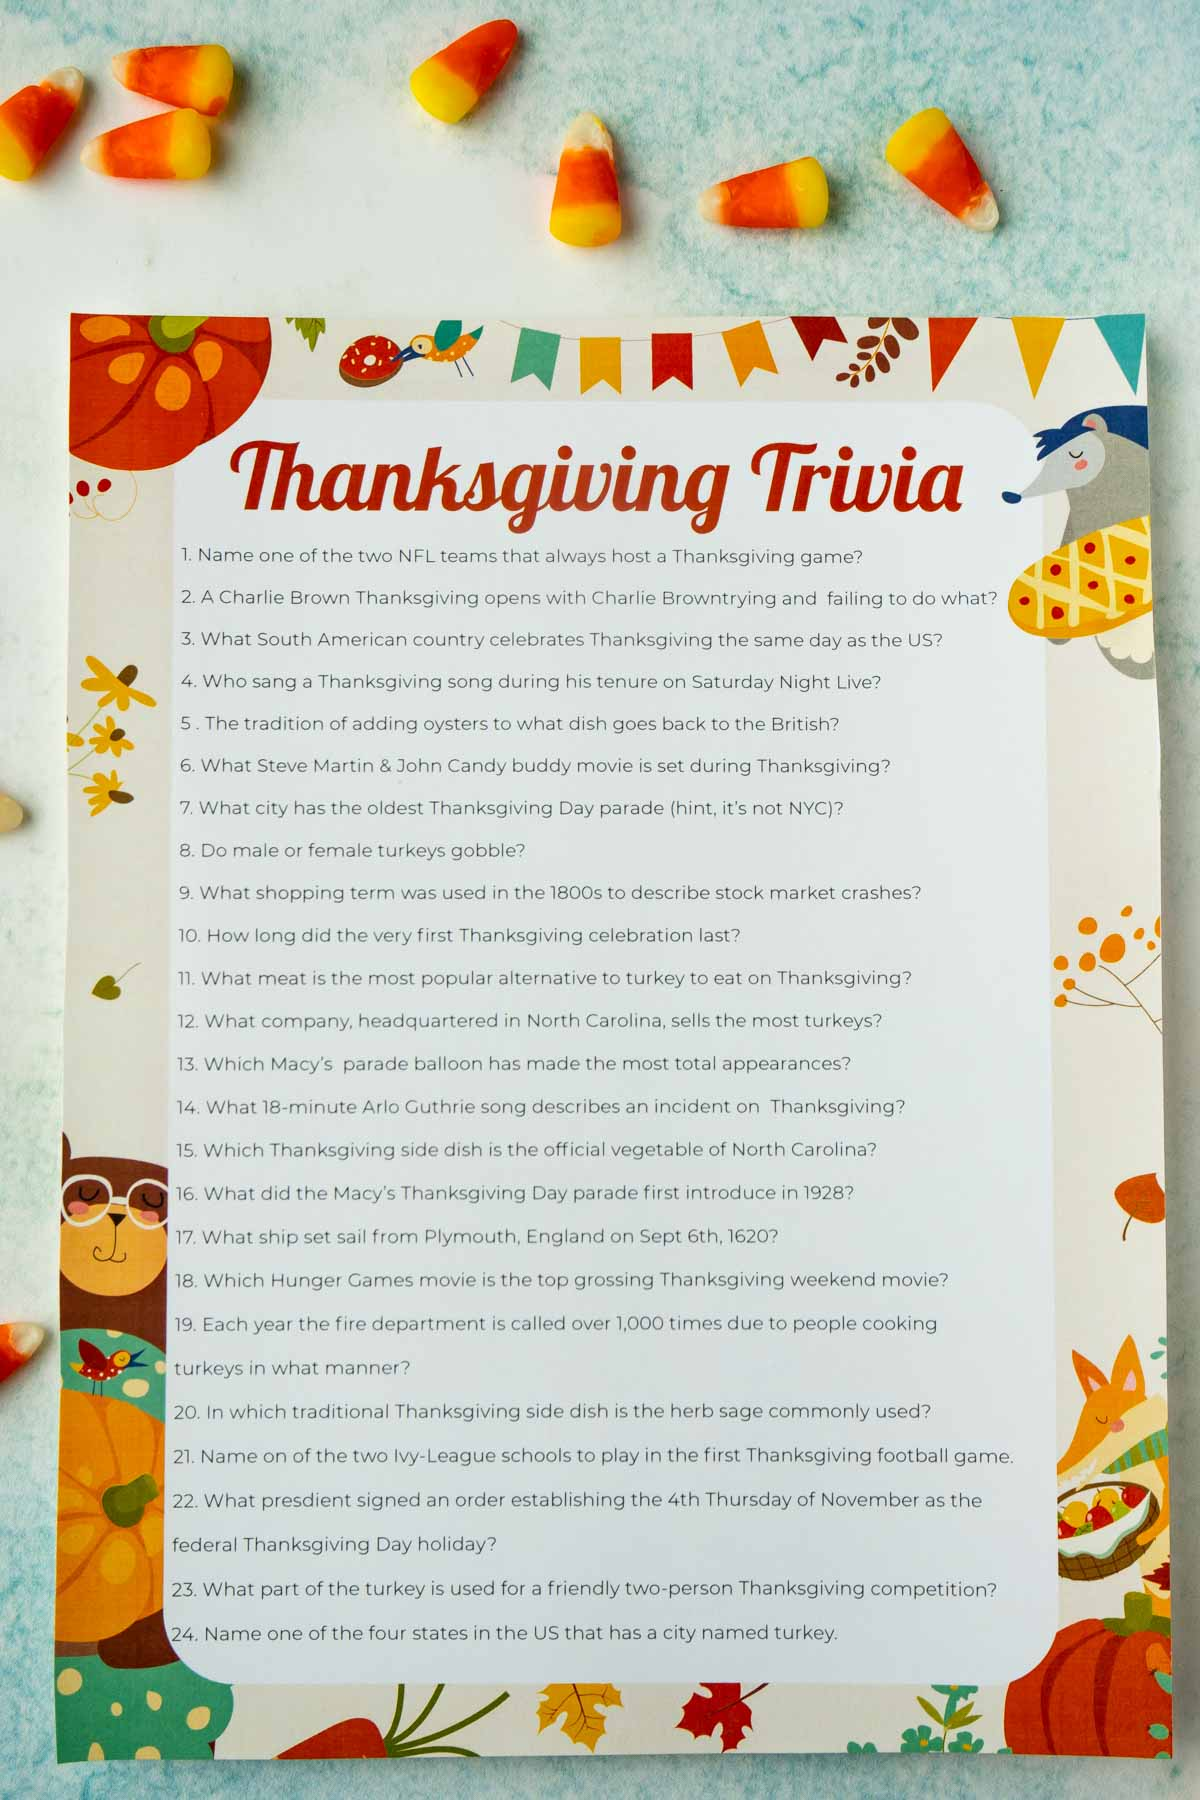 A printed out sheet of Thanksgiving trivia questions